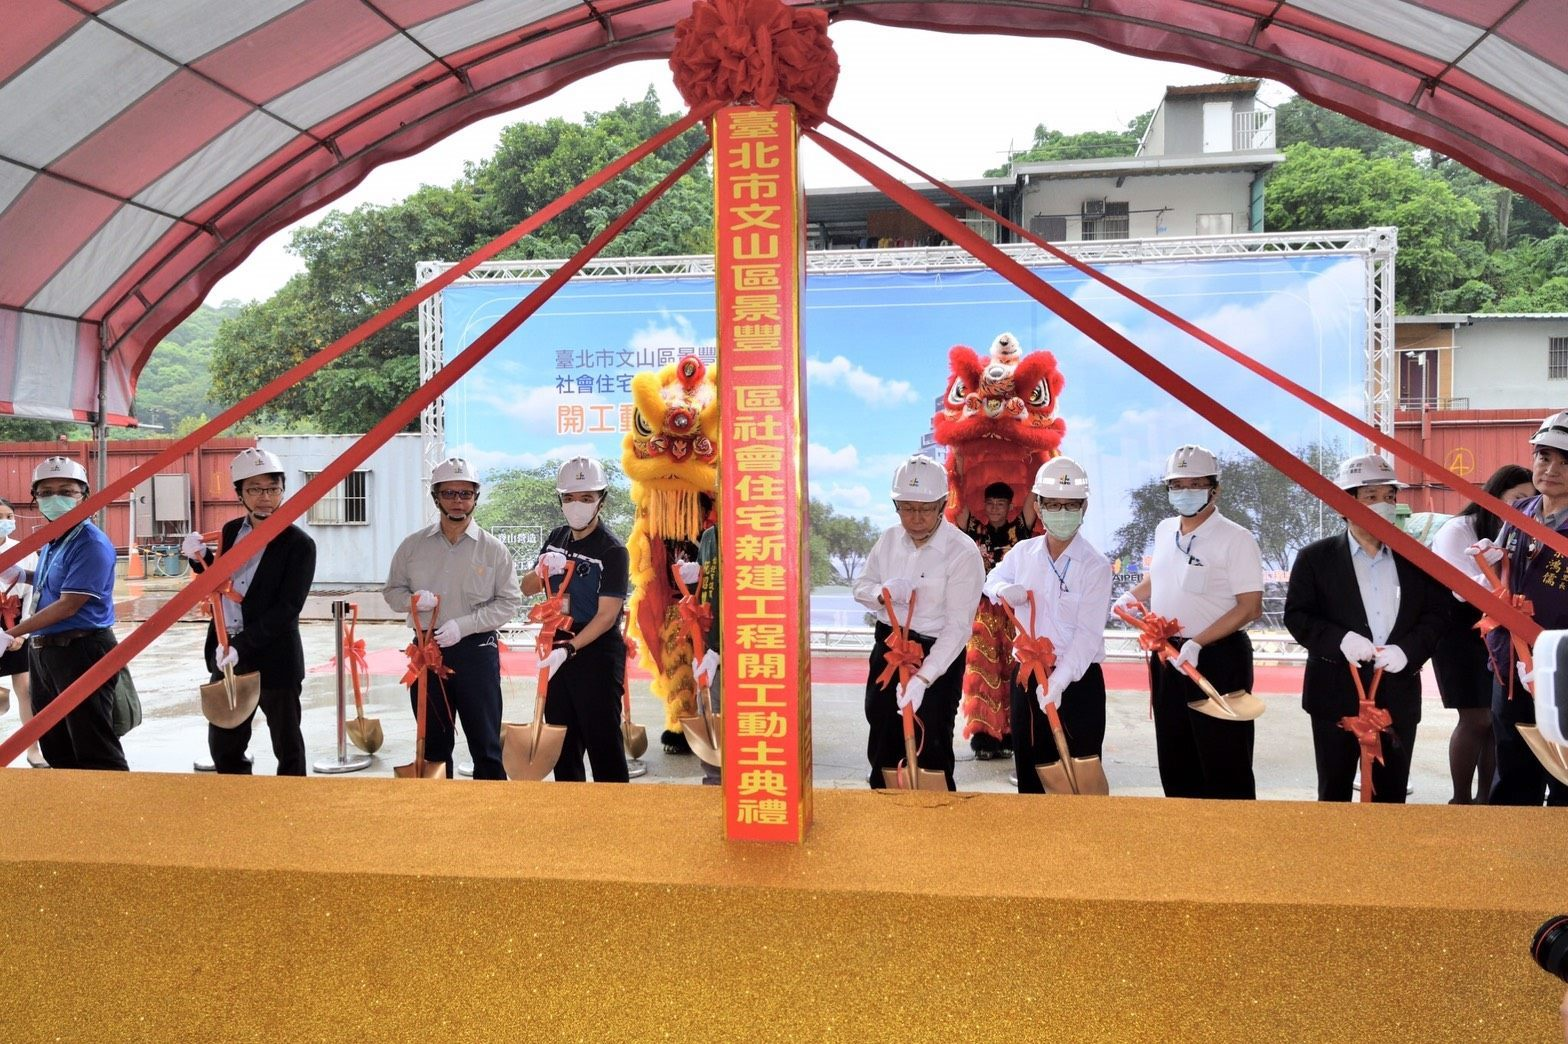 Groundbreaking for the new social housing project in Wenshan.